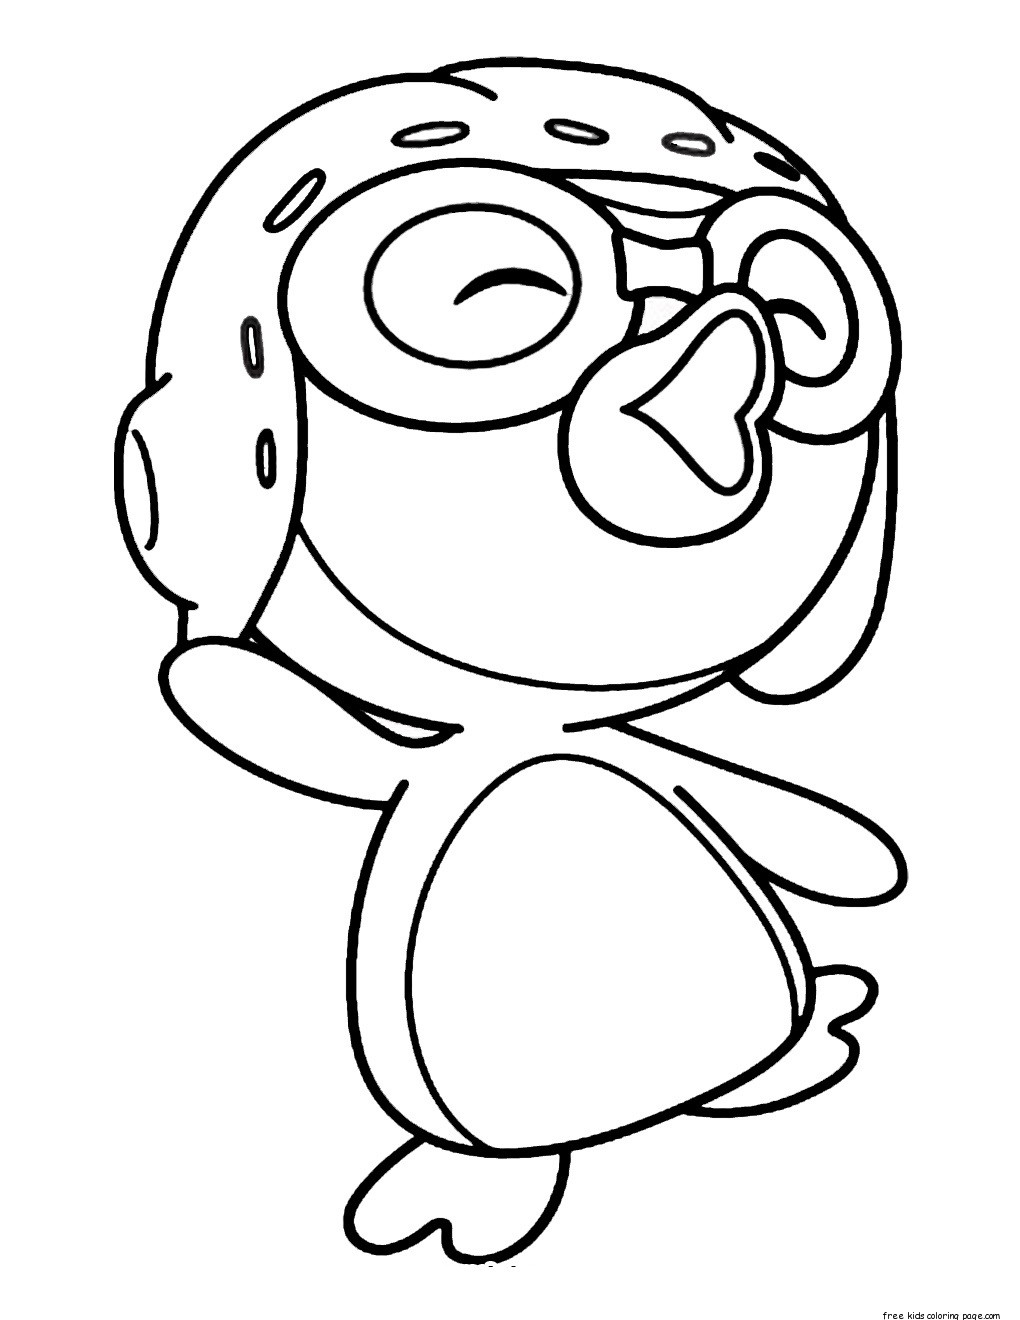 Printable pororo the little penguin coloring pages for for Free coloring pages of penguins